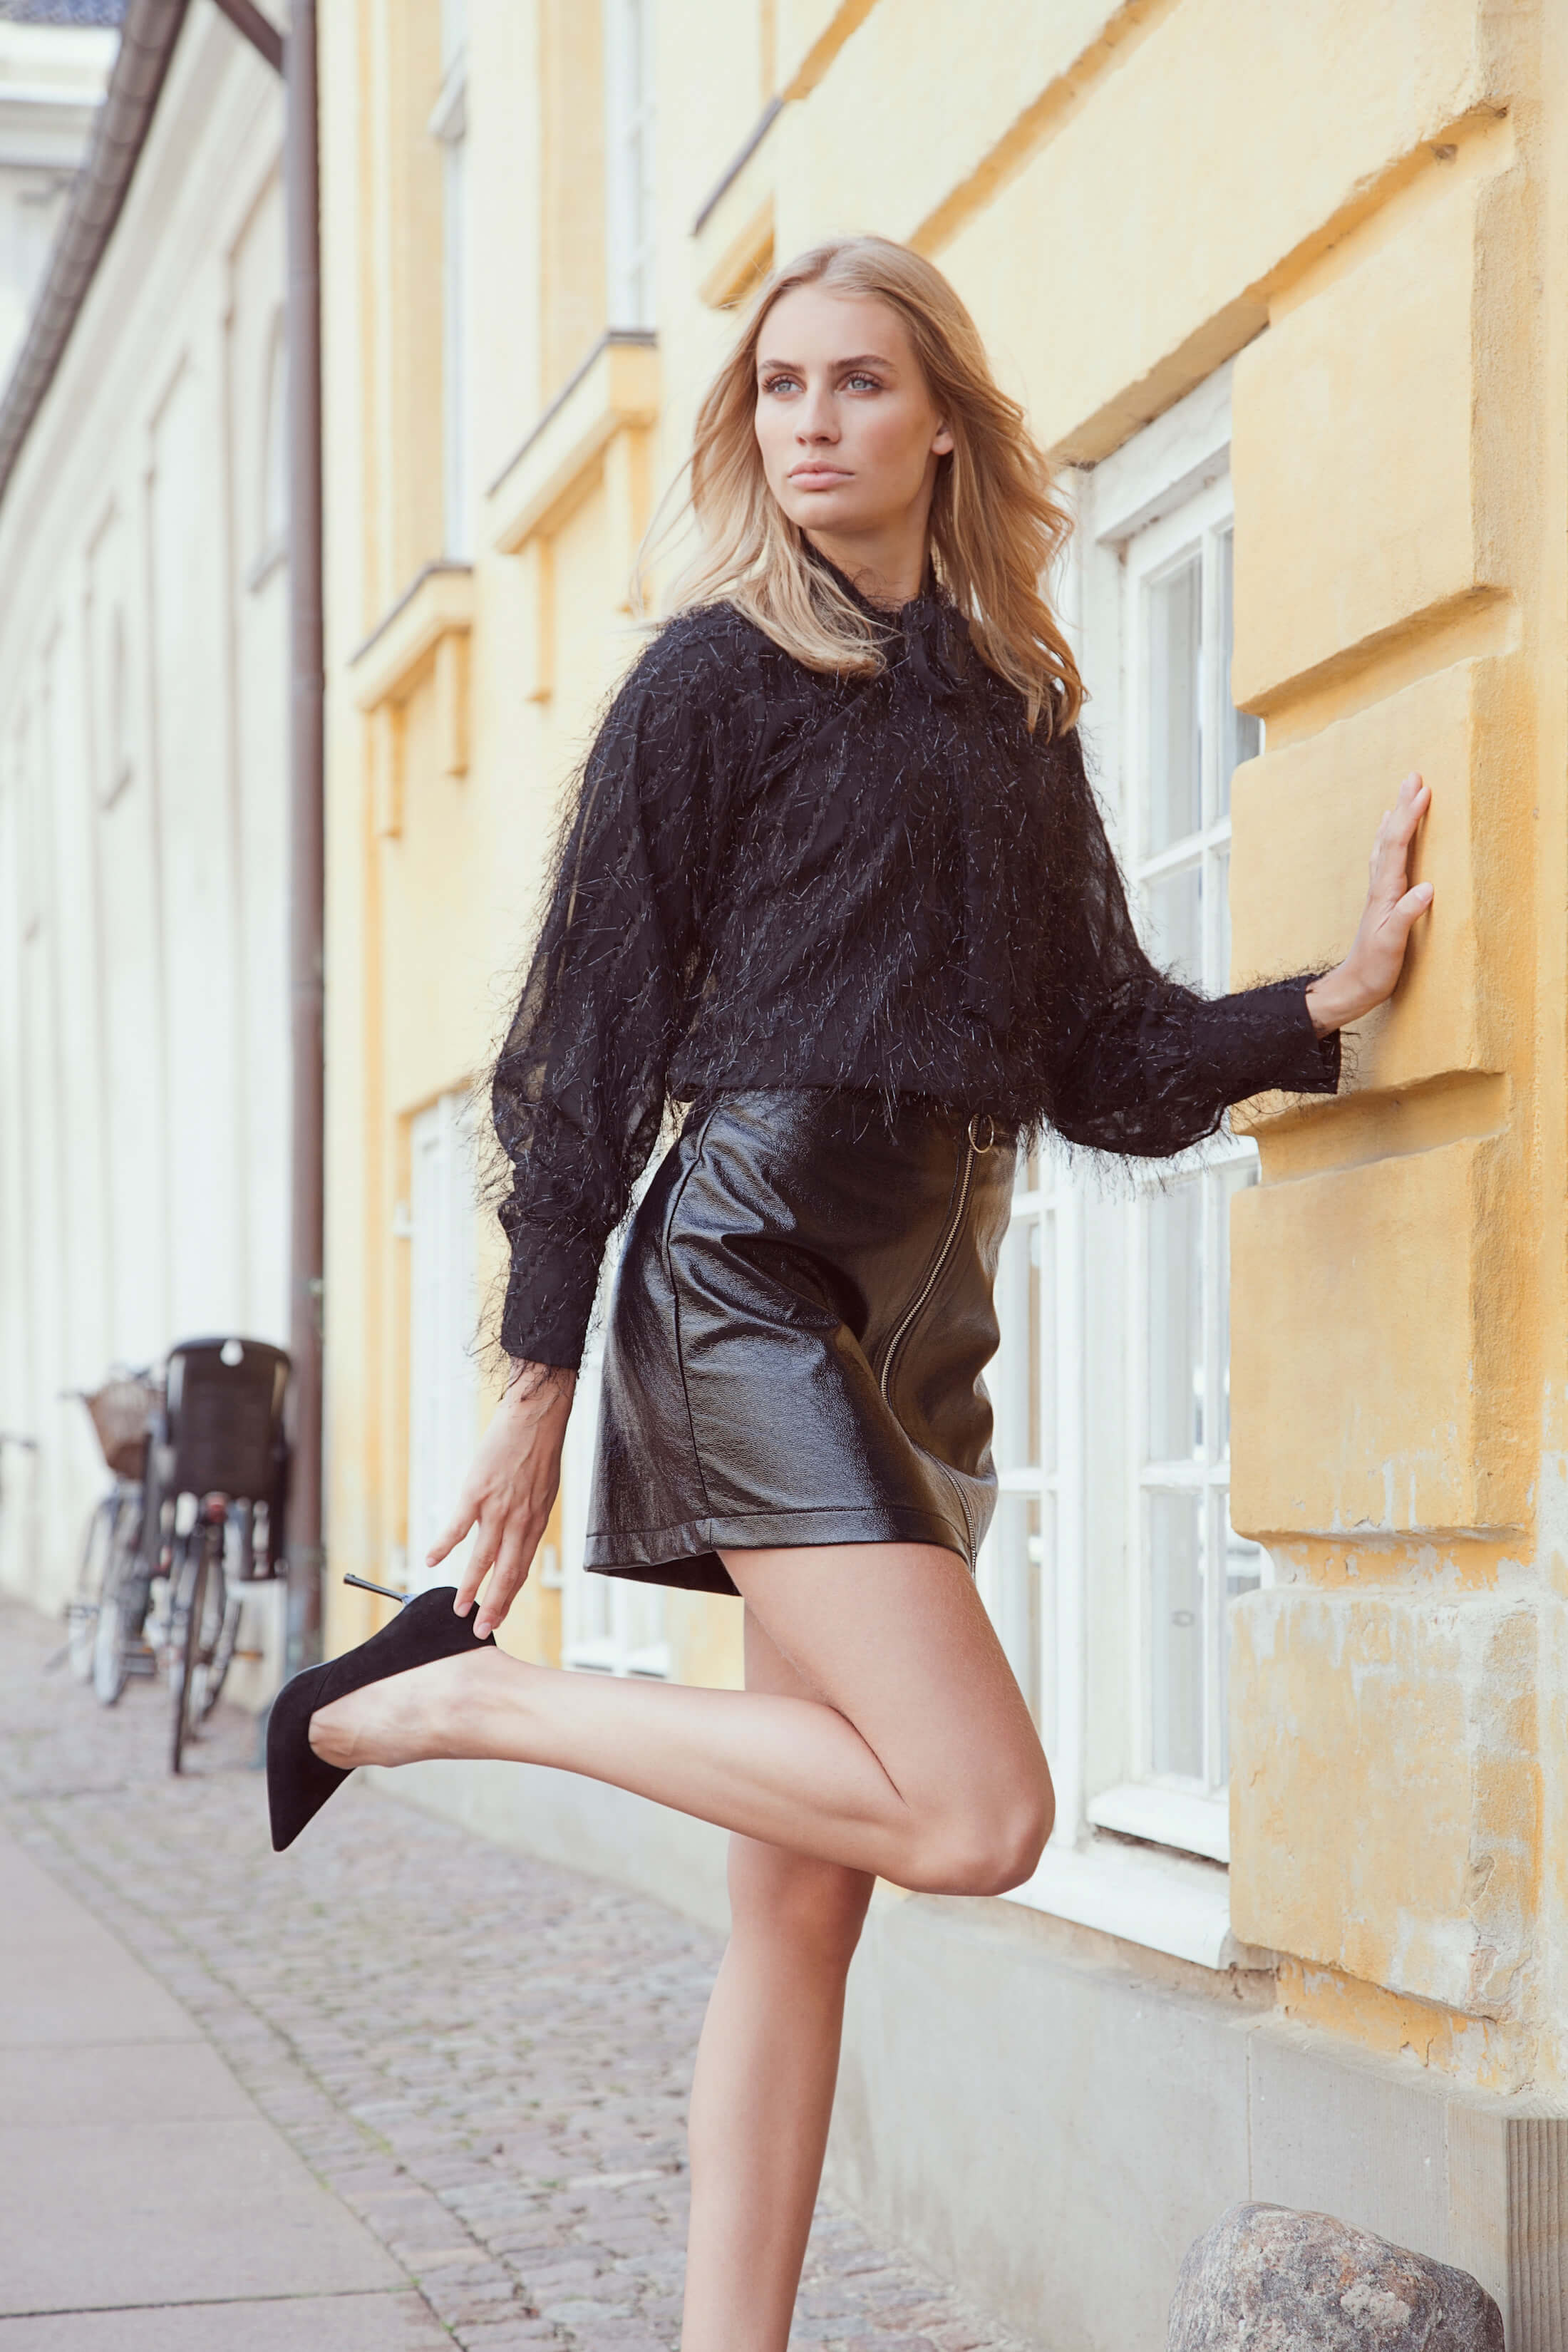 Shining skirt, it can never go wrong!